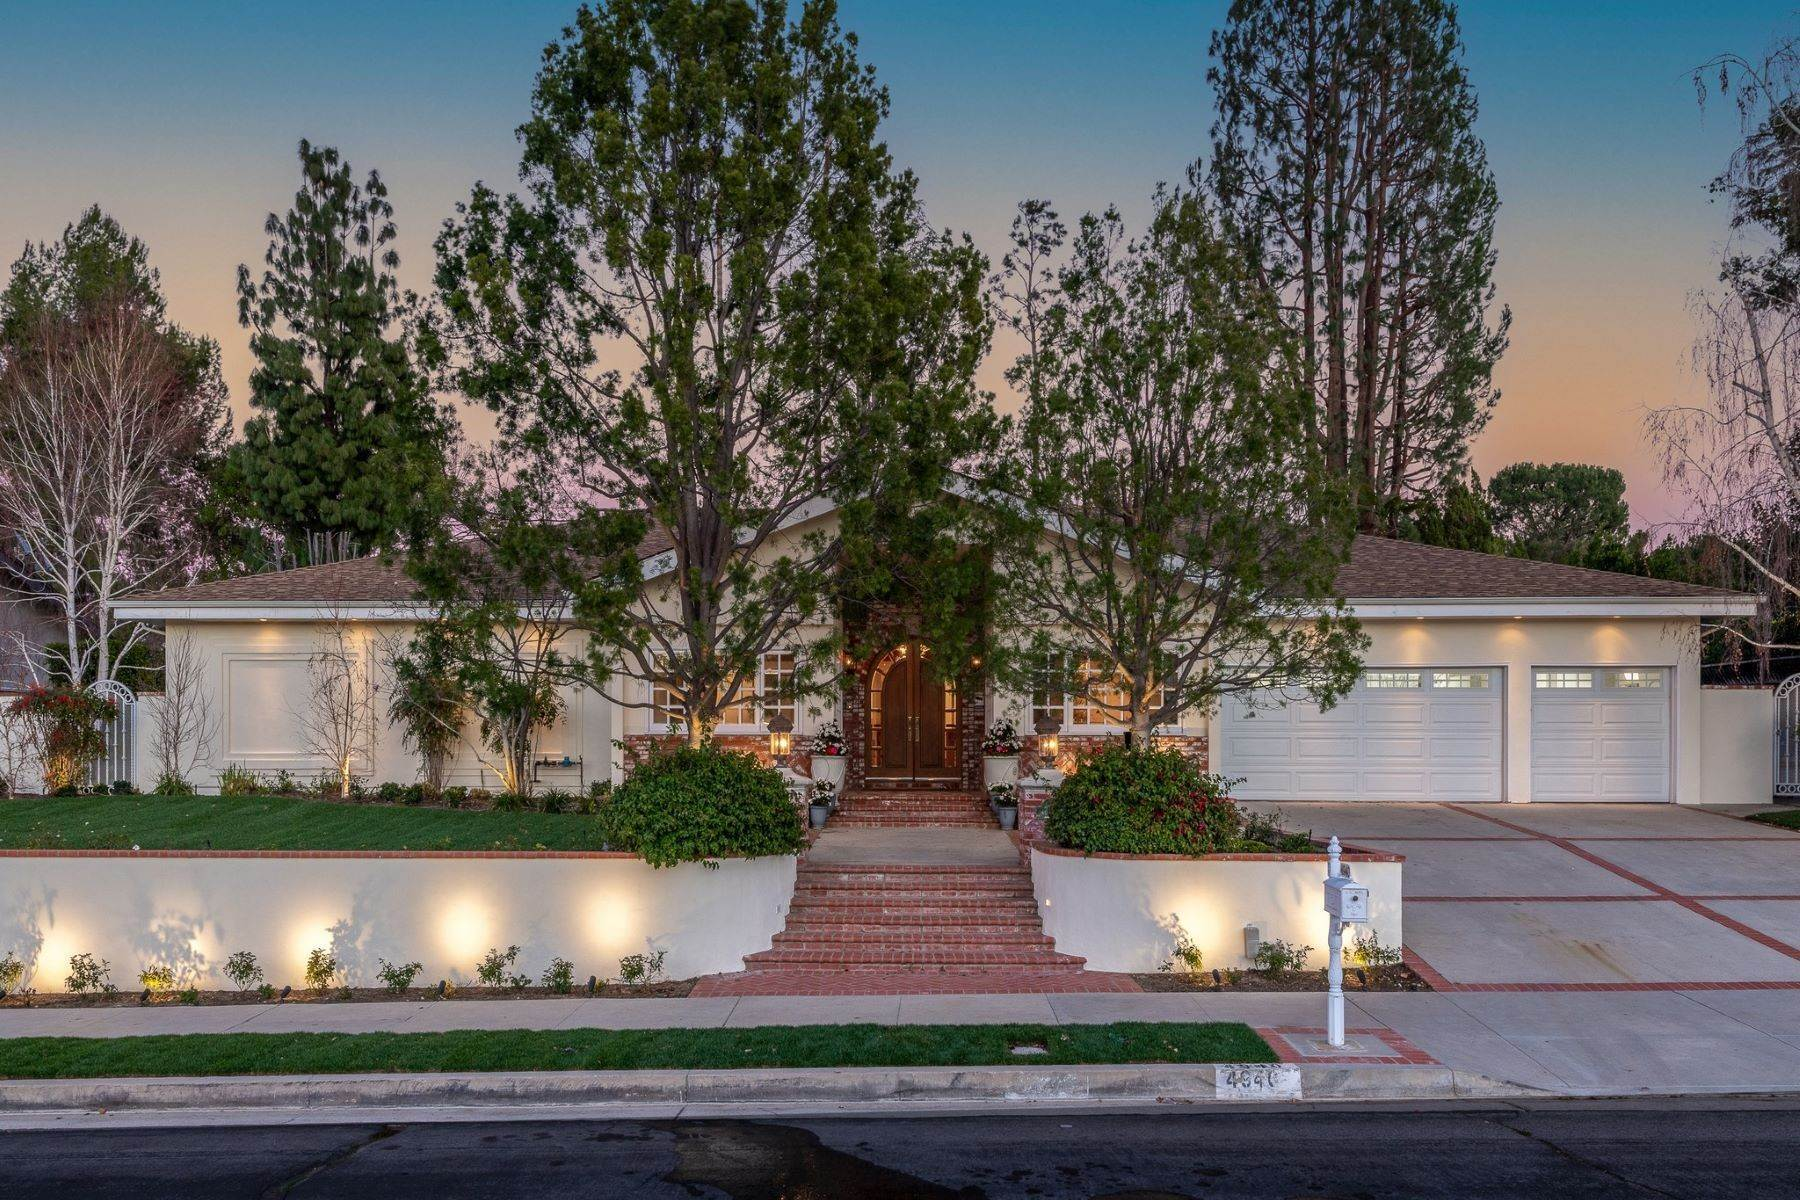 Single Family Homes for Sale at 4940 Bascule Avenue Woodland Hills, California 91364 United States